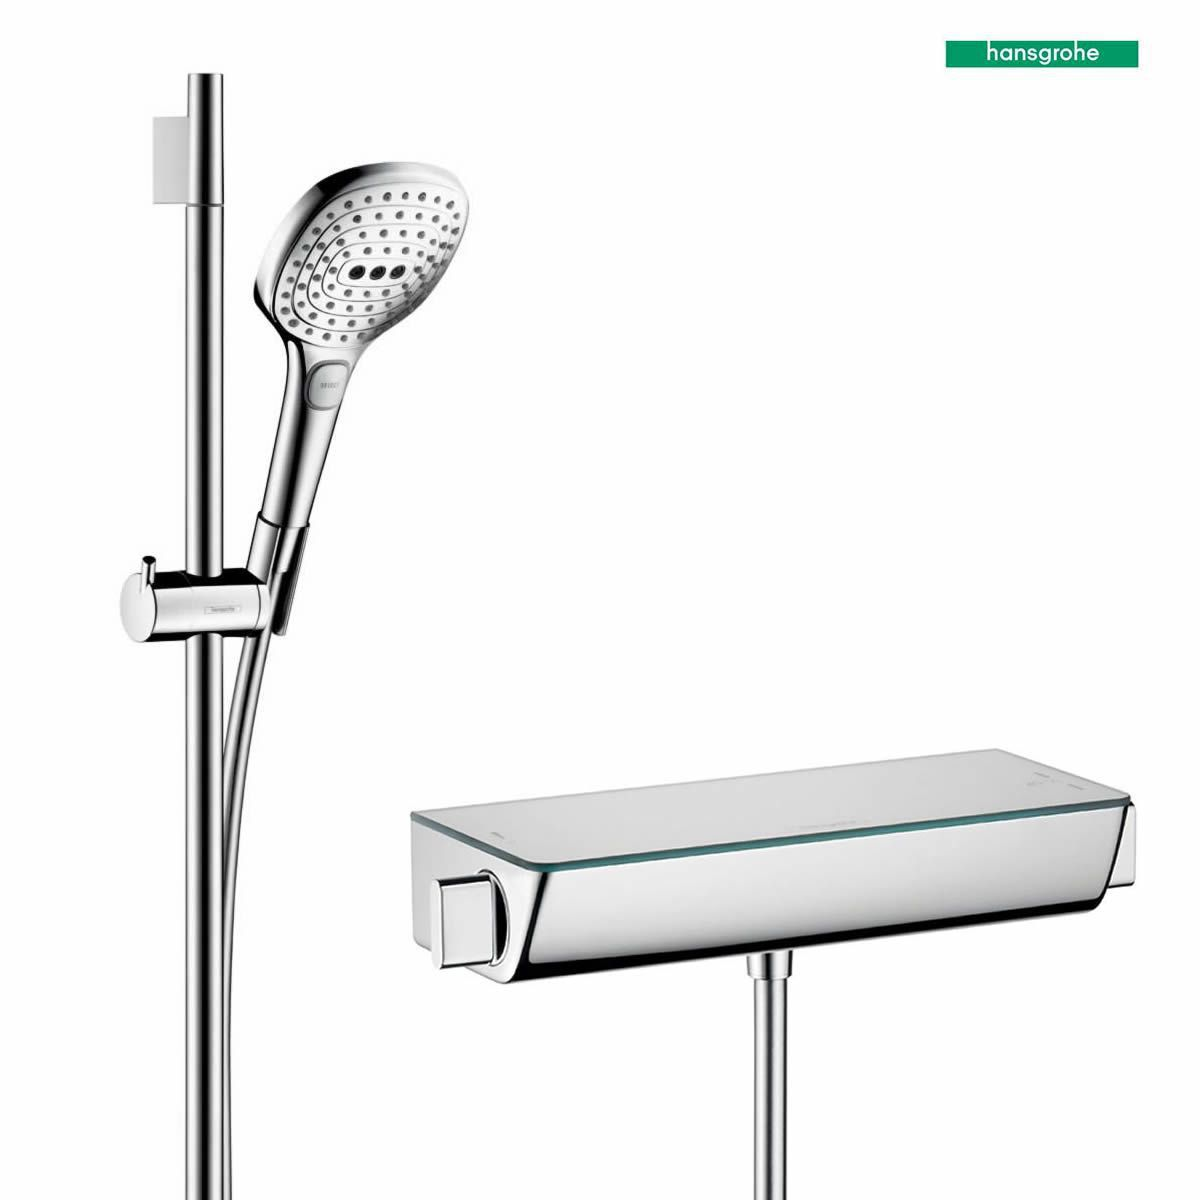 hansgrohe ecostat select with raindance select e 120 3 jet hand shower bathrooms direct yorkshire. Black Bedroom Furniture Sets. Home Design Ideas